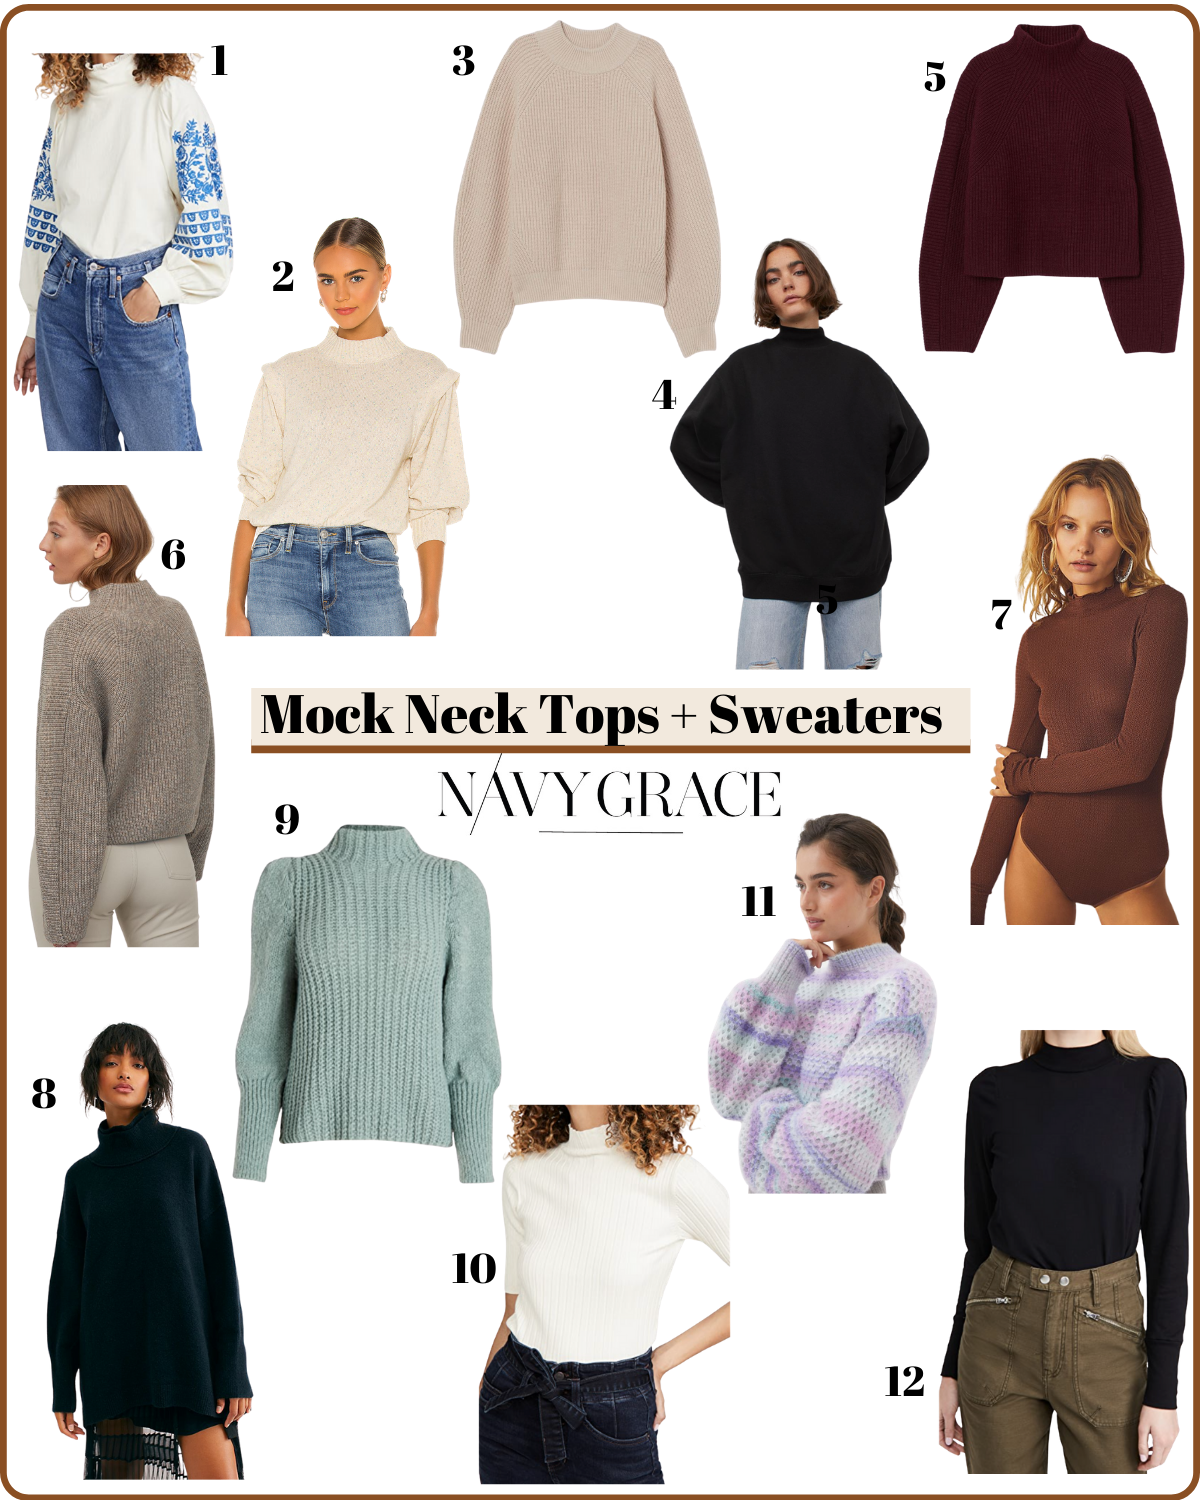 Mock Neck tops and Sweaters